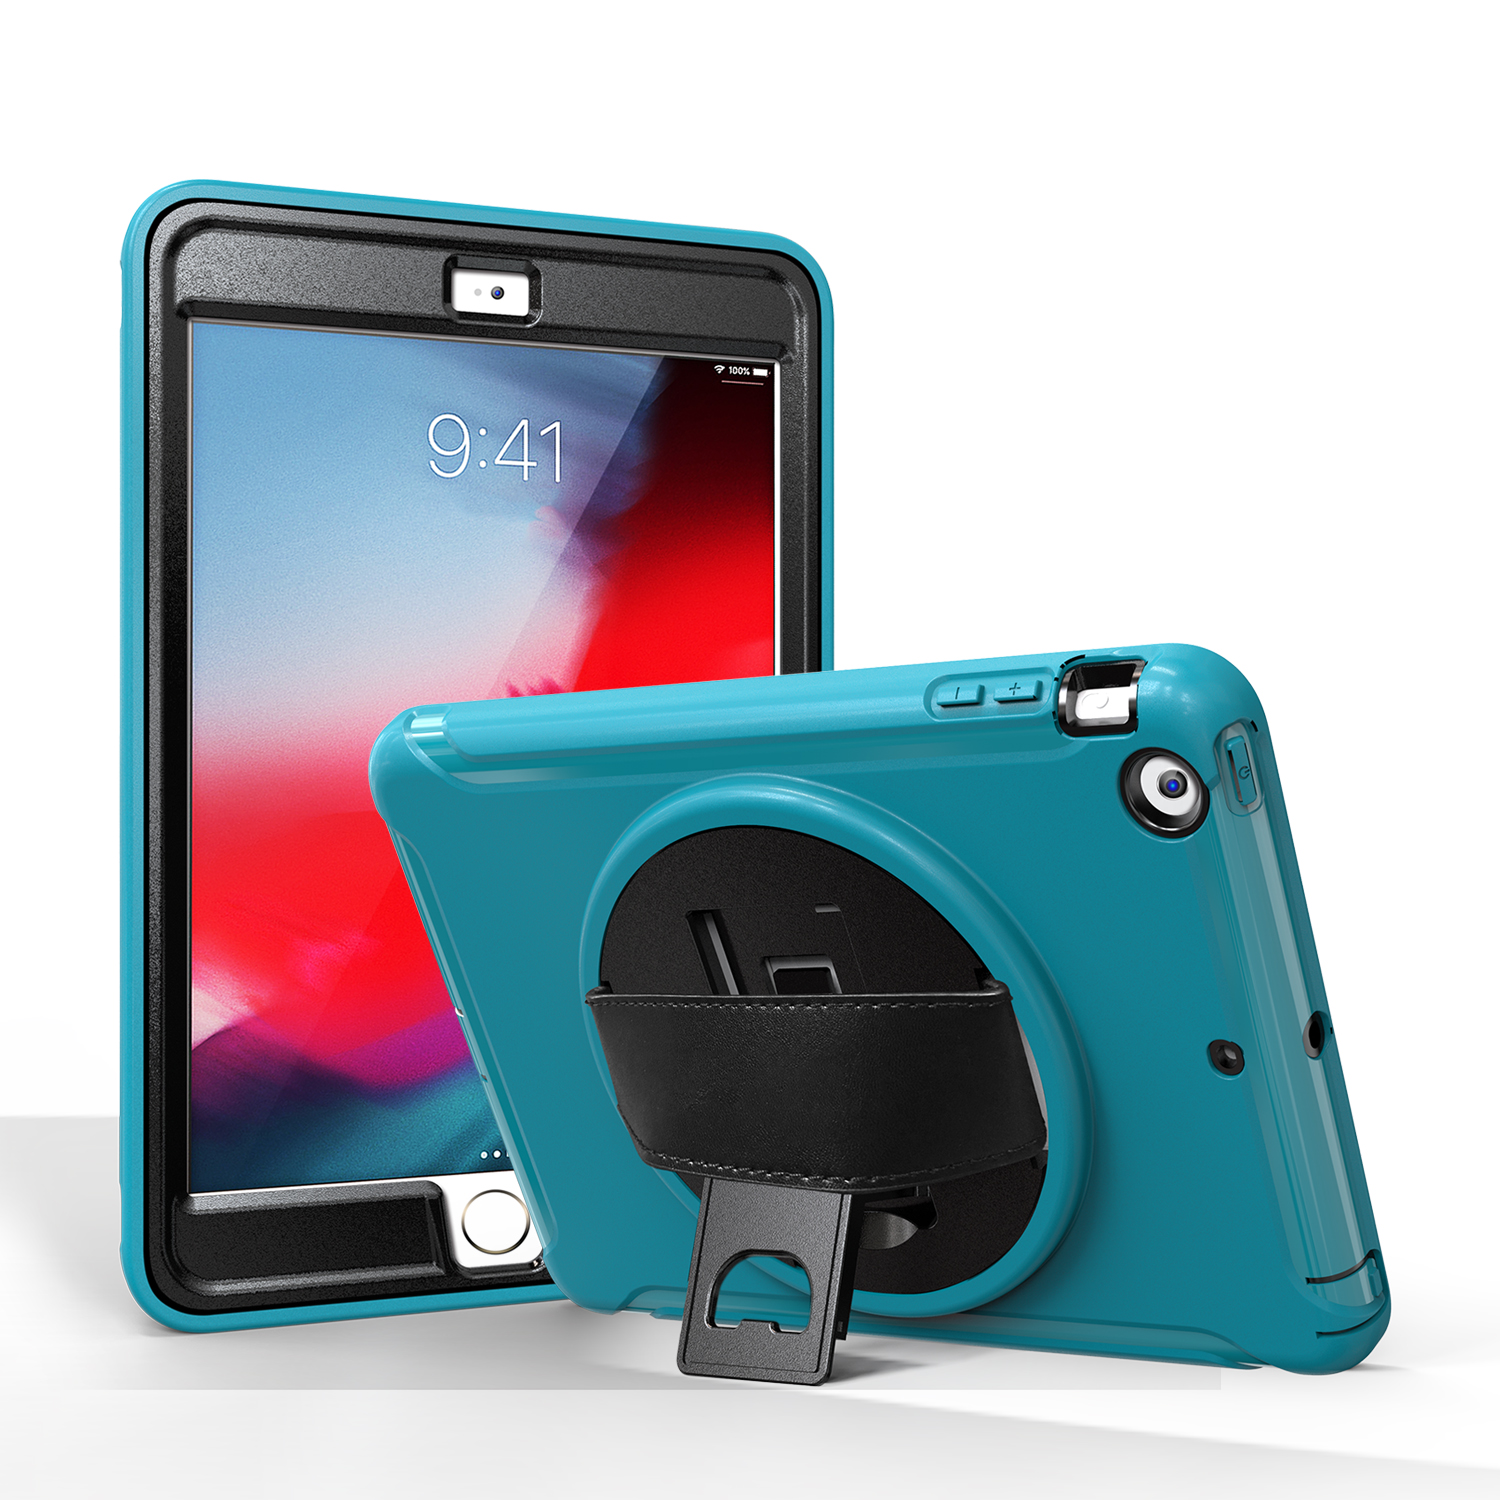 For ipad MINI 1 / 2 / 3 Wrist Handle Tri-proof Shockproof Dustproof Anti-fall Protective Cover with Bracket Light blue